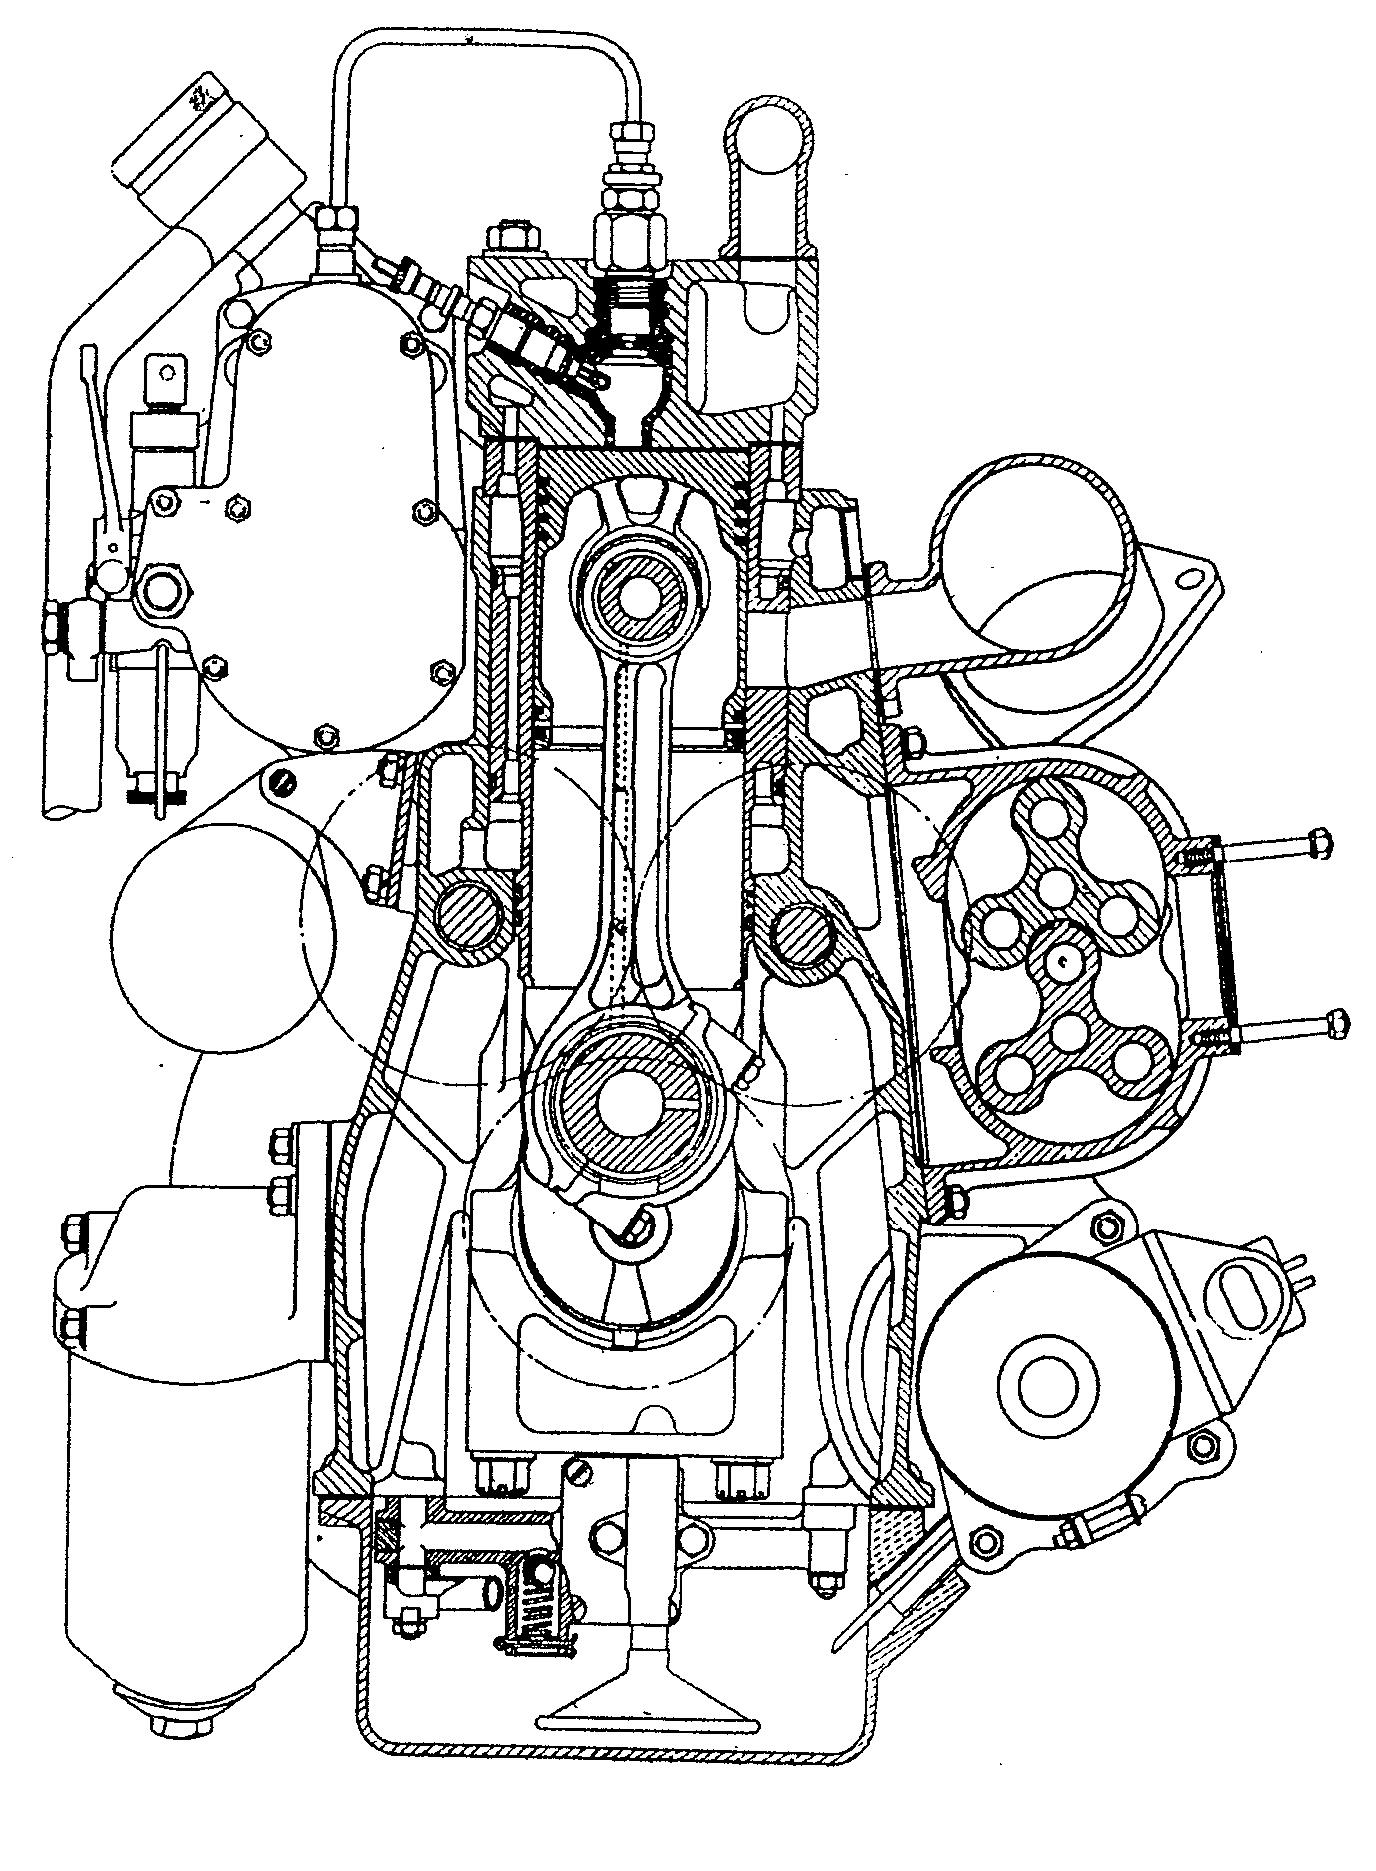 End view of l40 engine